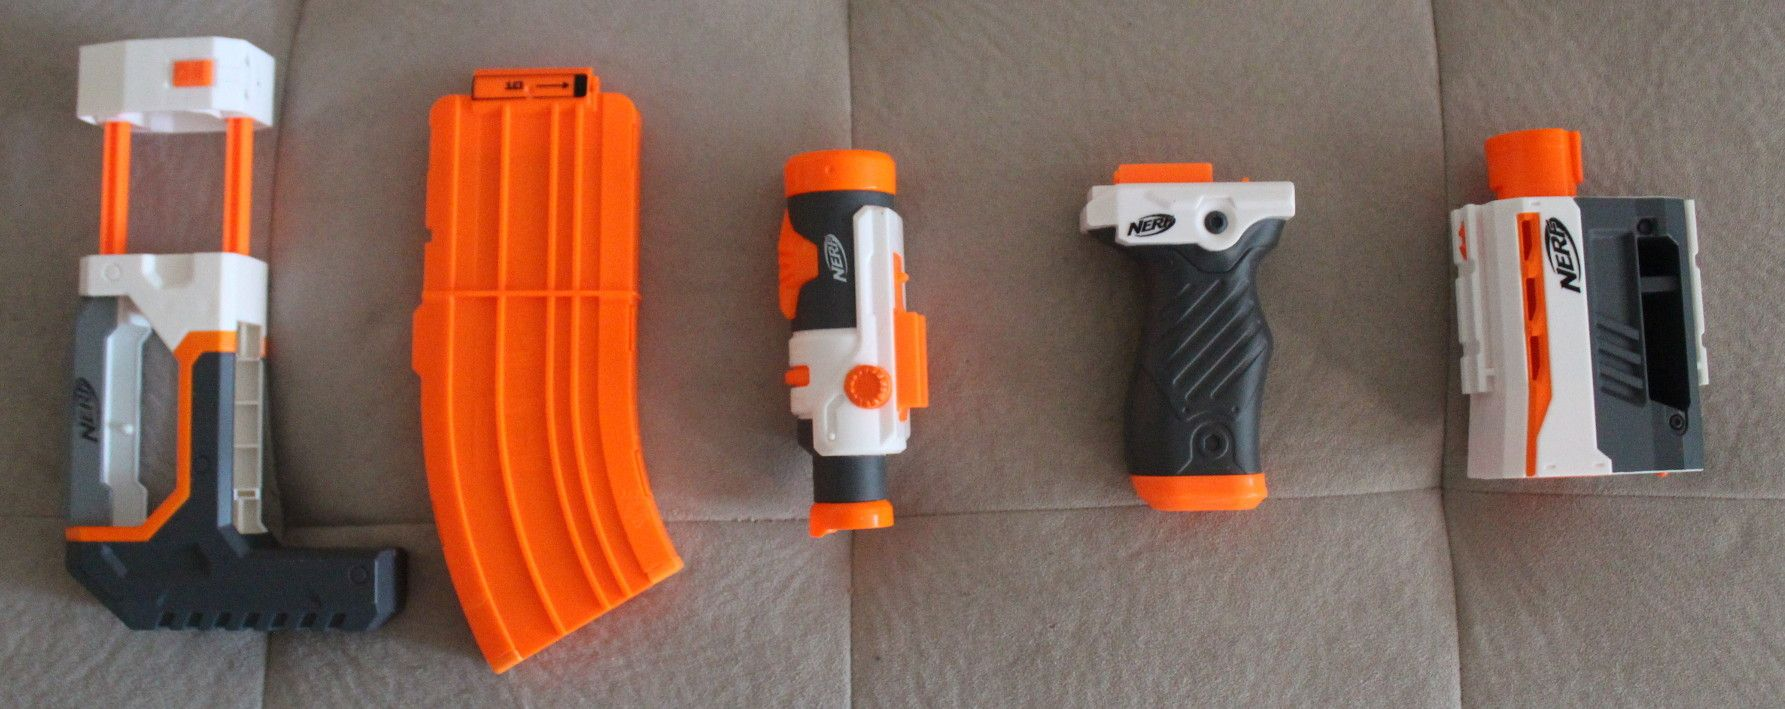 Nerf Gun Attachments